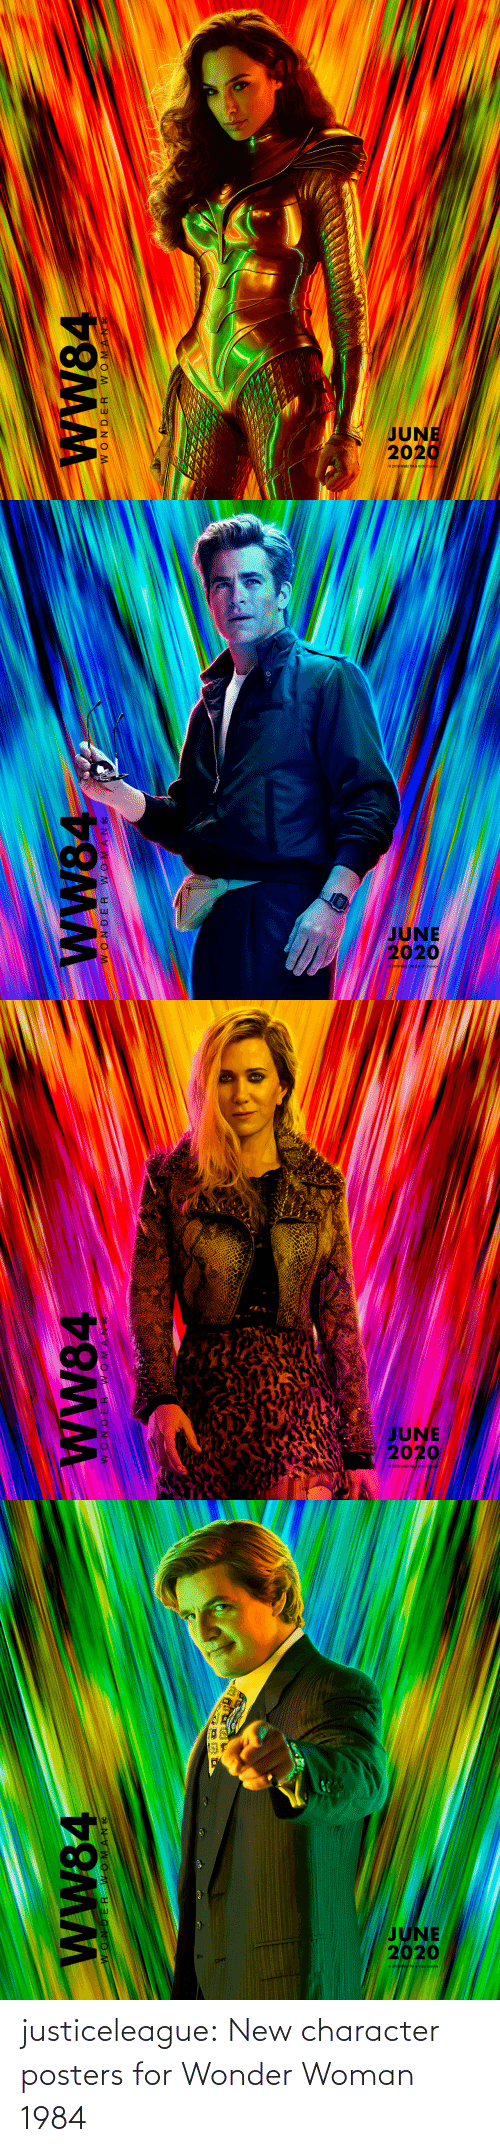 Wonder Woman: WW84  JI NVWO M   JUNE  2020  wW84  WONDER WOMANC   JUNE  2020  2019 WBEI TMGOC  wW84  WONDER WOMAN C   JUNE  2020  wW84  30 NVWOM N OM justiceleague: New character posters for Wonder Woman 1984